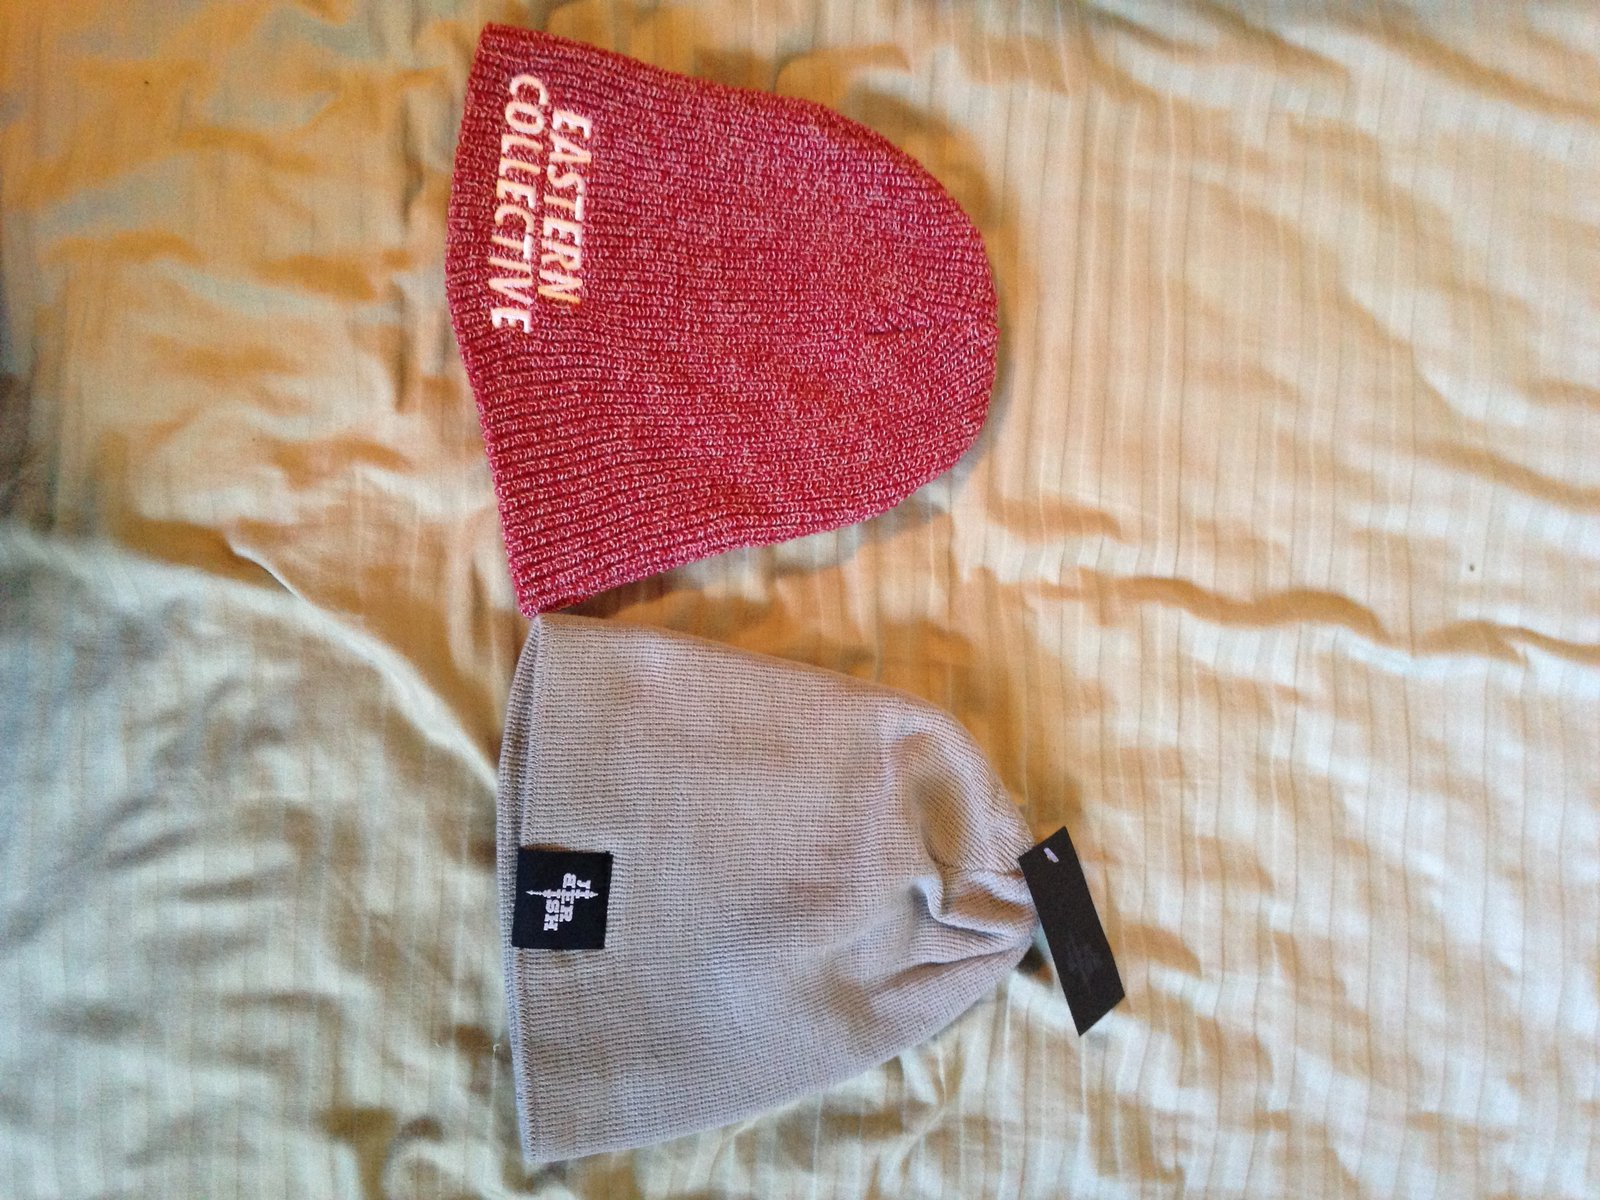 Jiberish Beanie and Eastern Collective